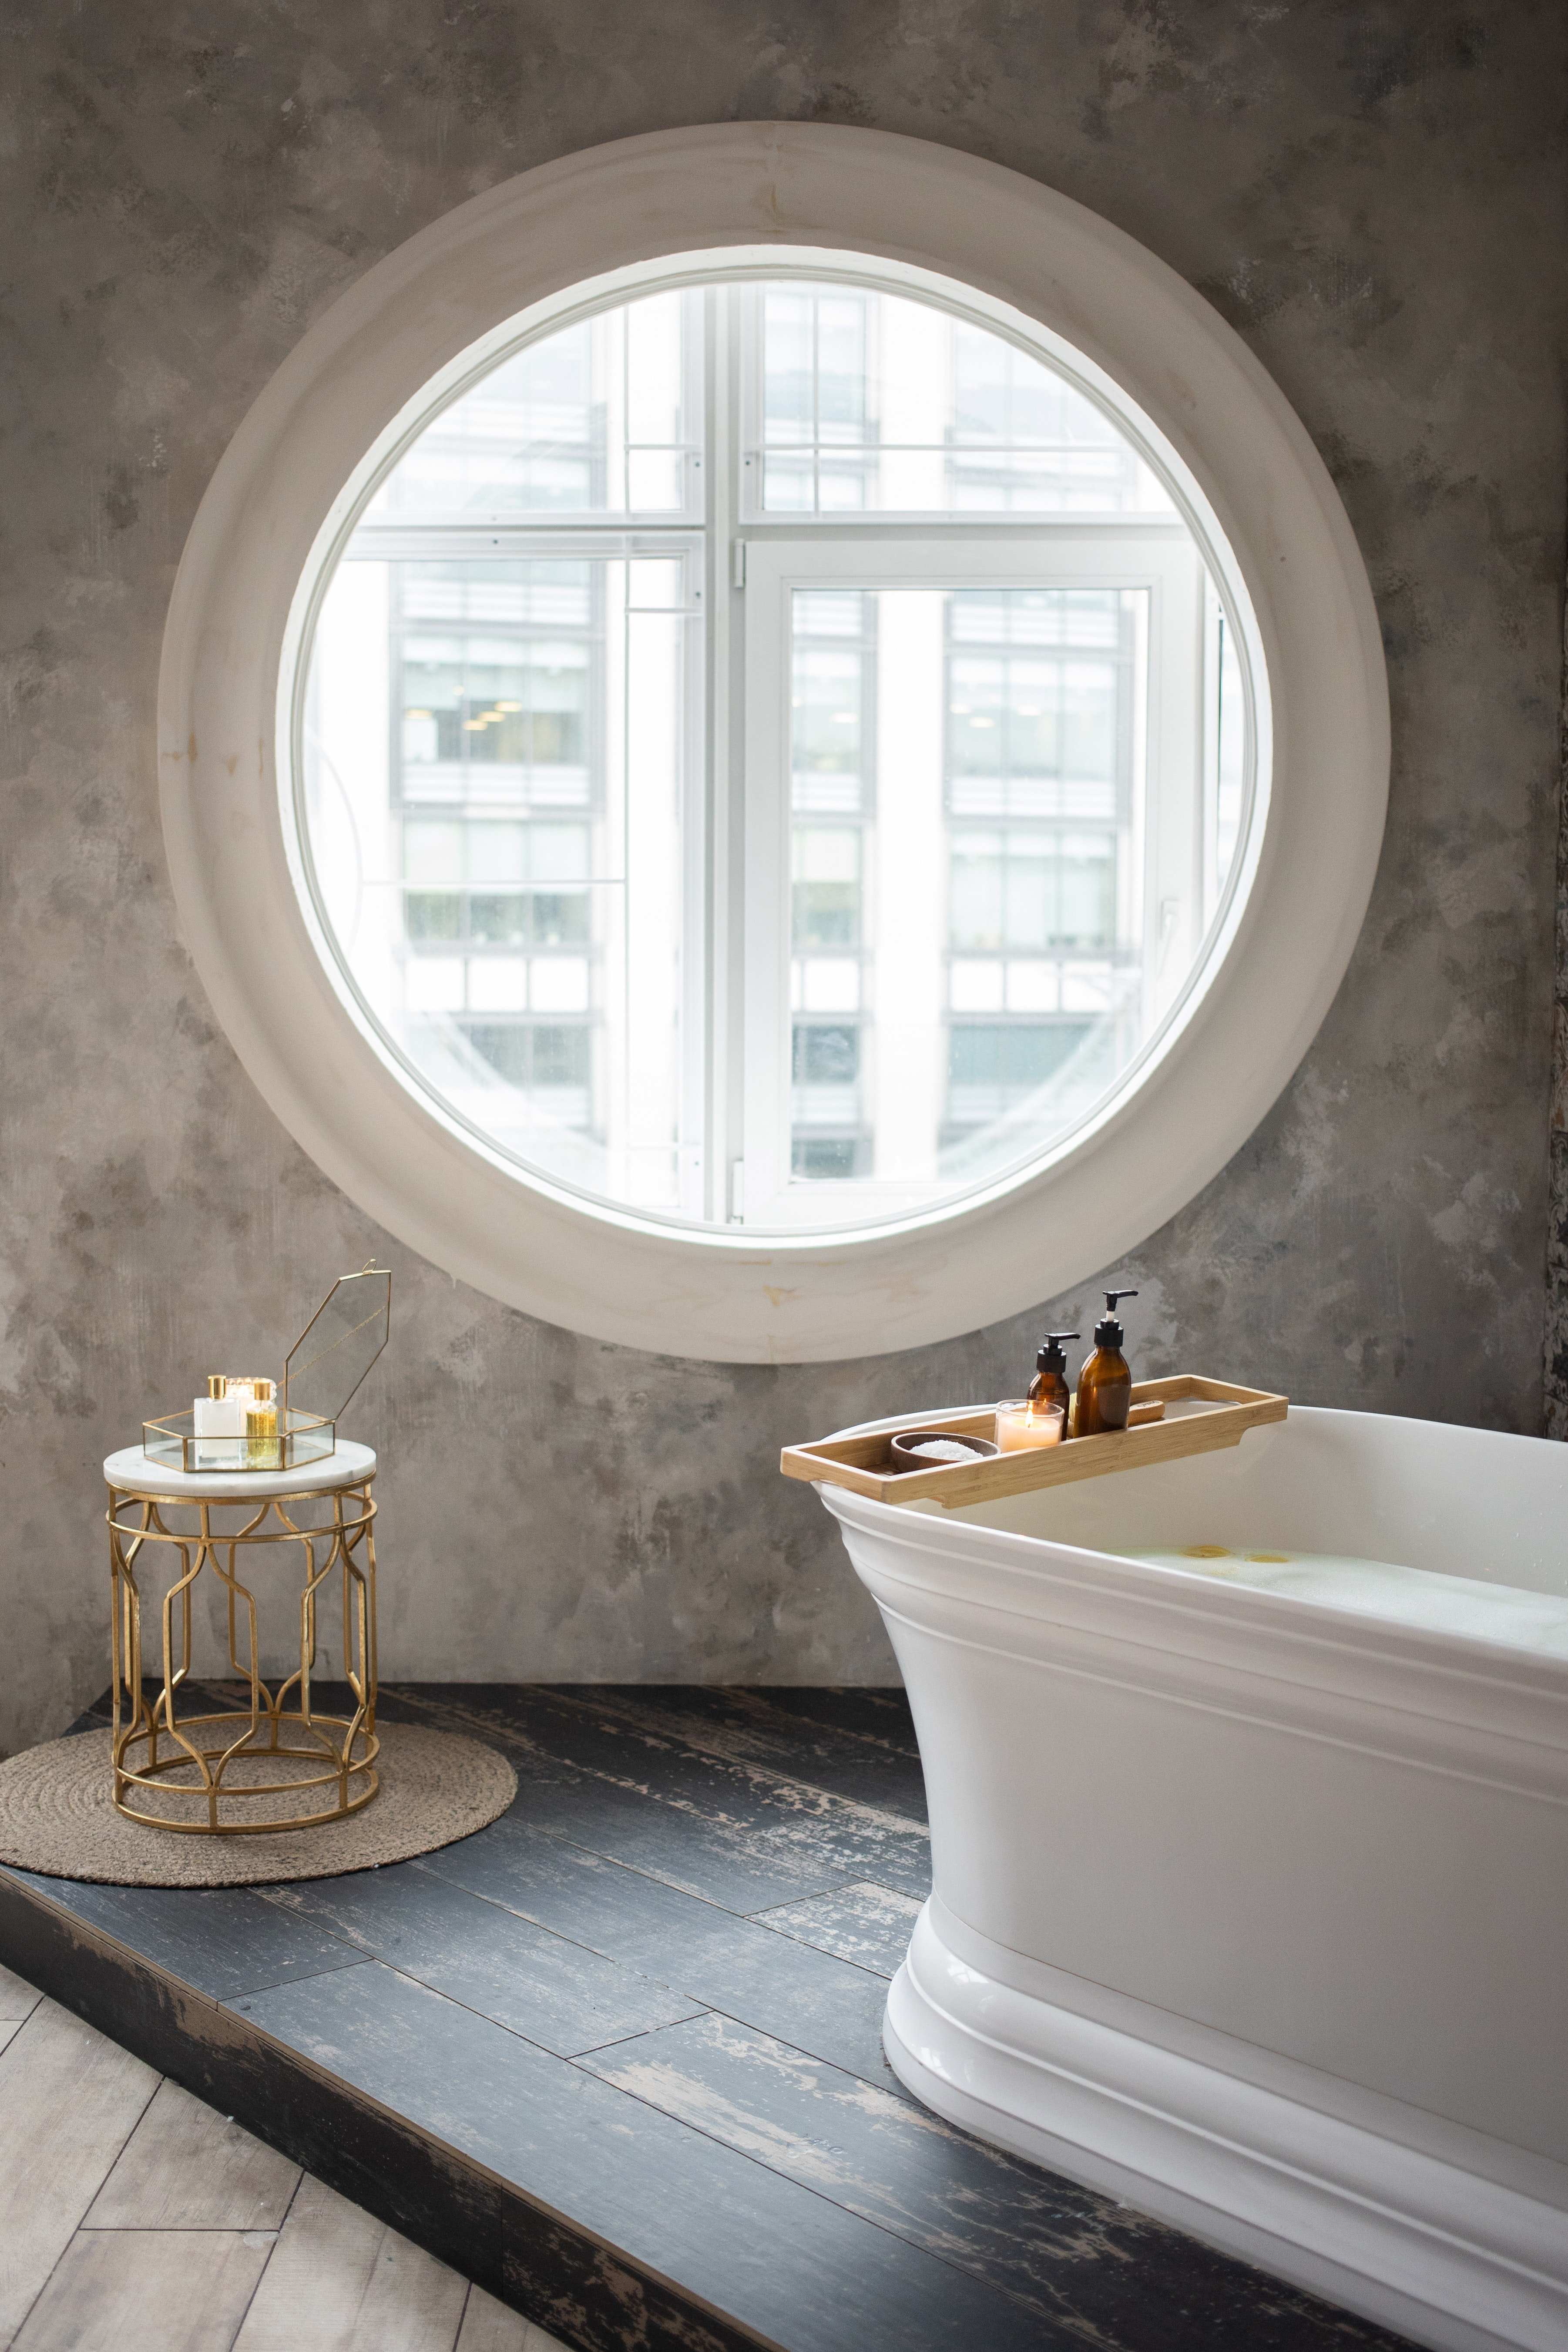 Pictured - An interior of a modern bathroom | Source: Pexels